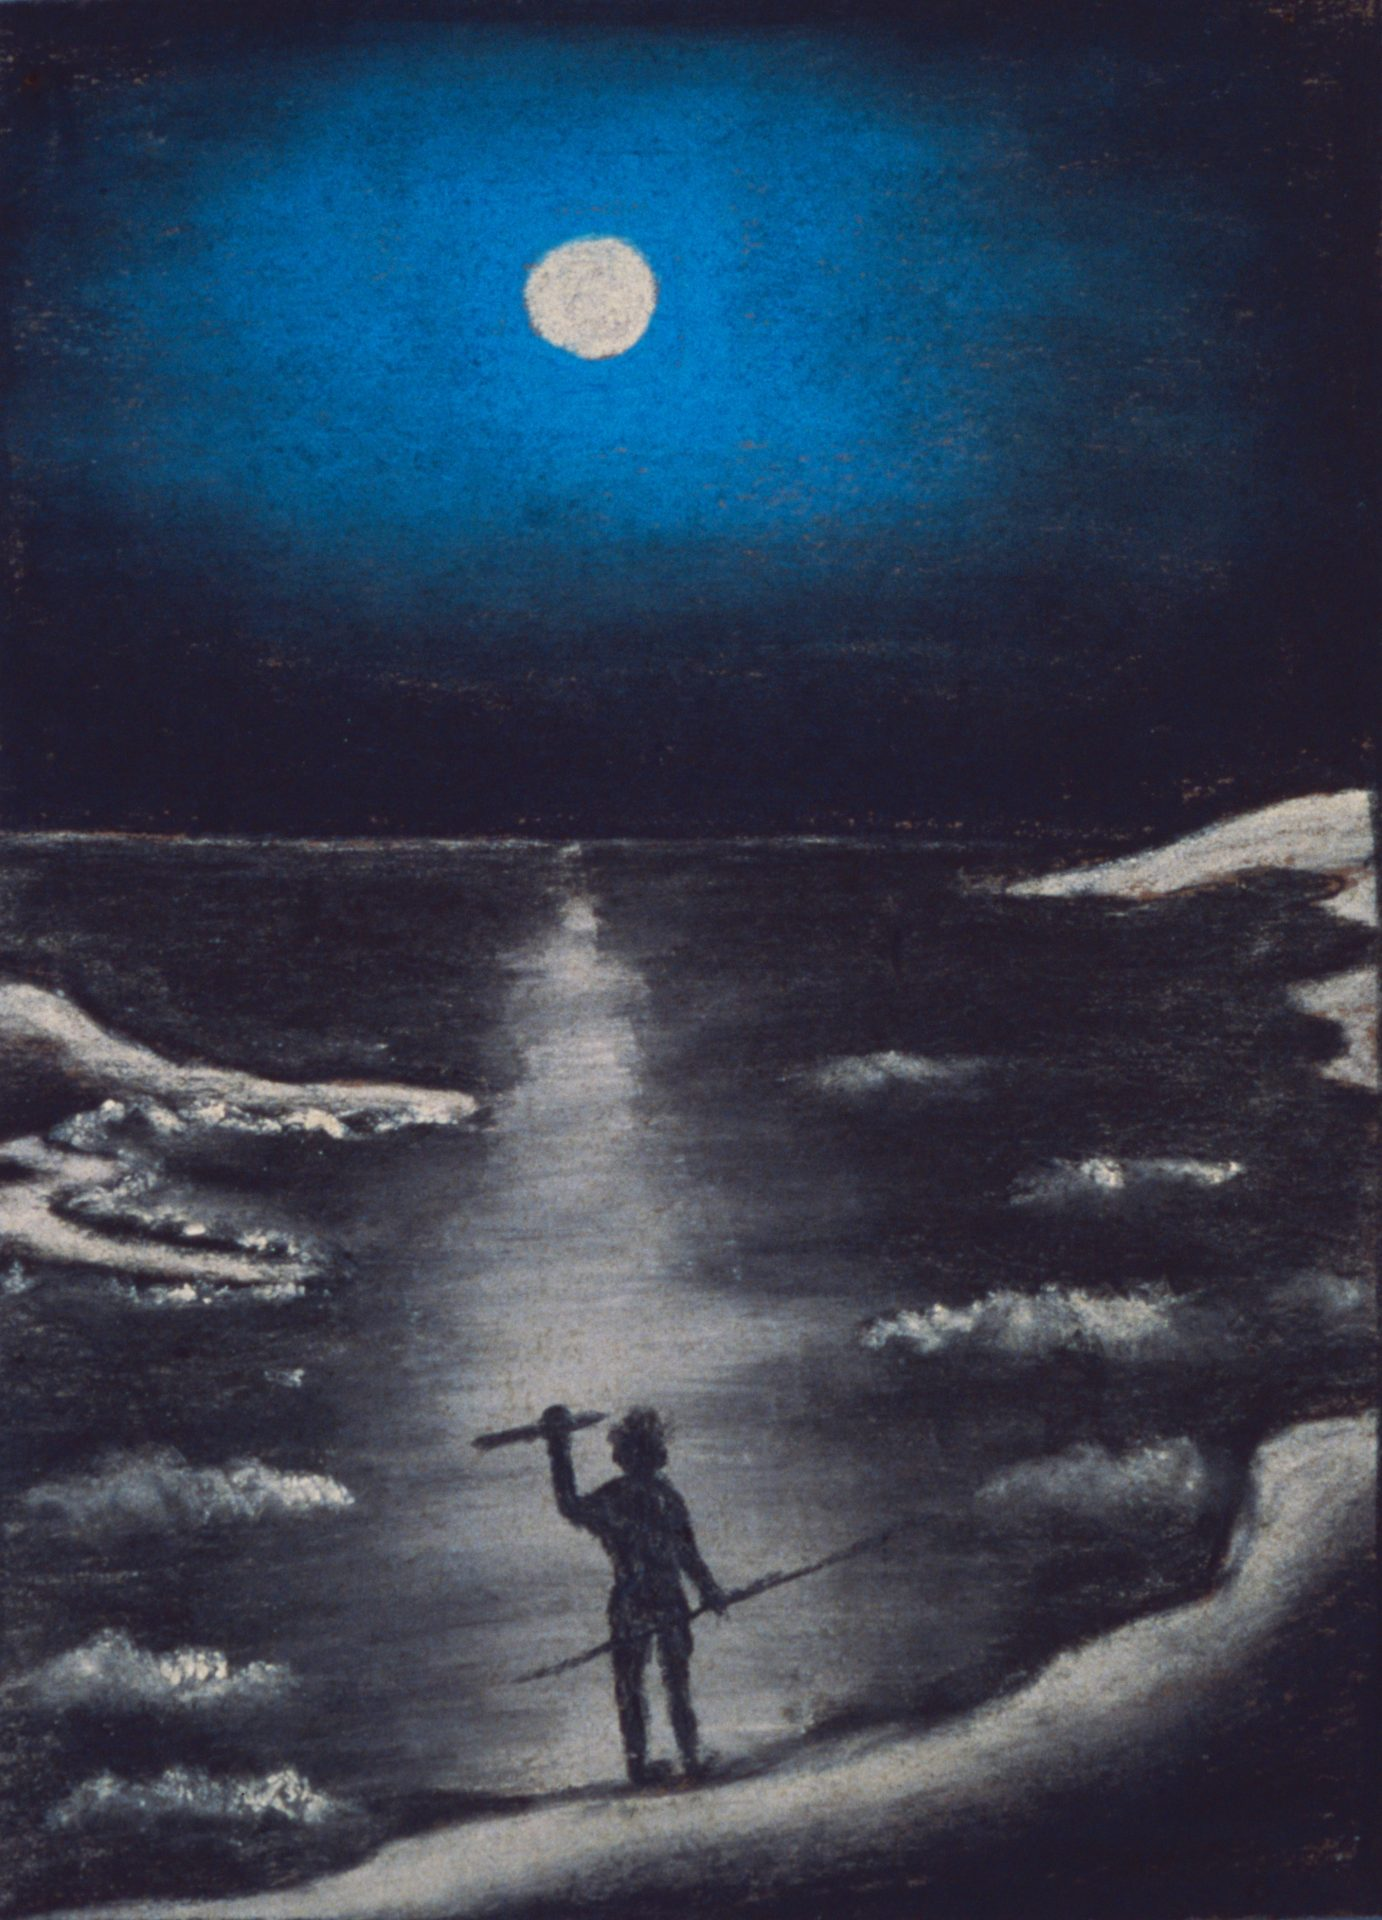 Moonlit coast by Parnell Dempster, pastel on paper, 25 x 19cm, c.1949. P. Jakes Collection, 1949, Berndt Museum of Anthropology. [WU5983]